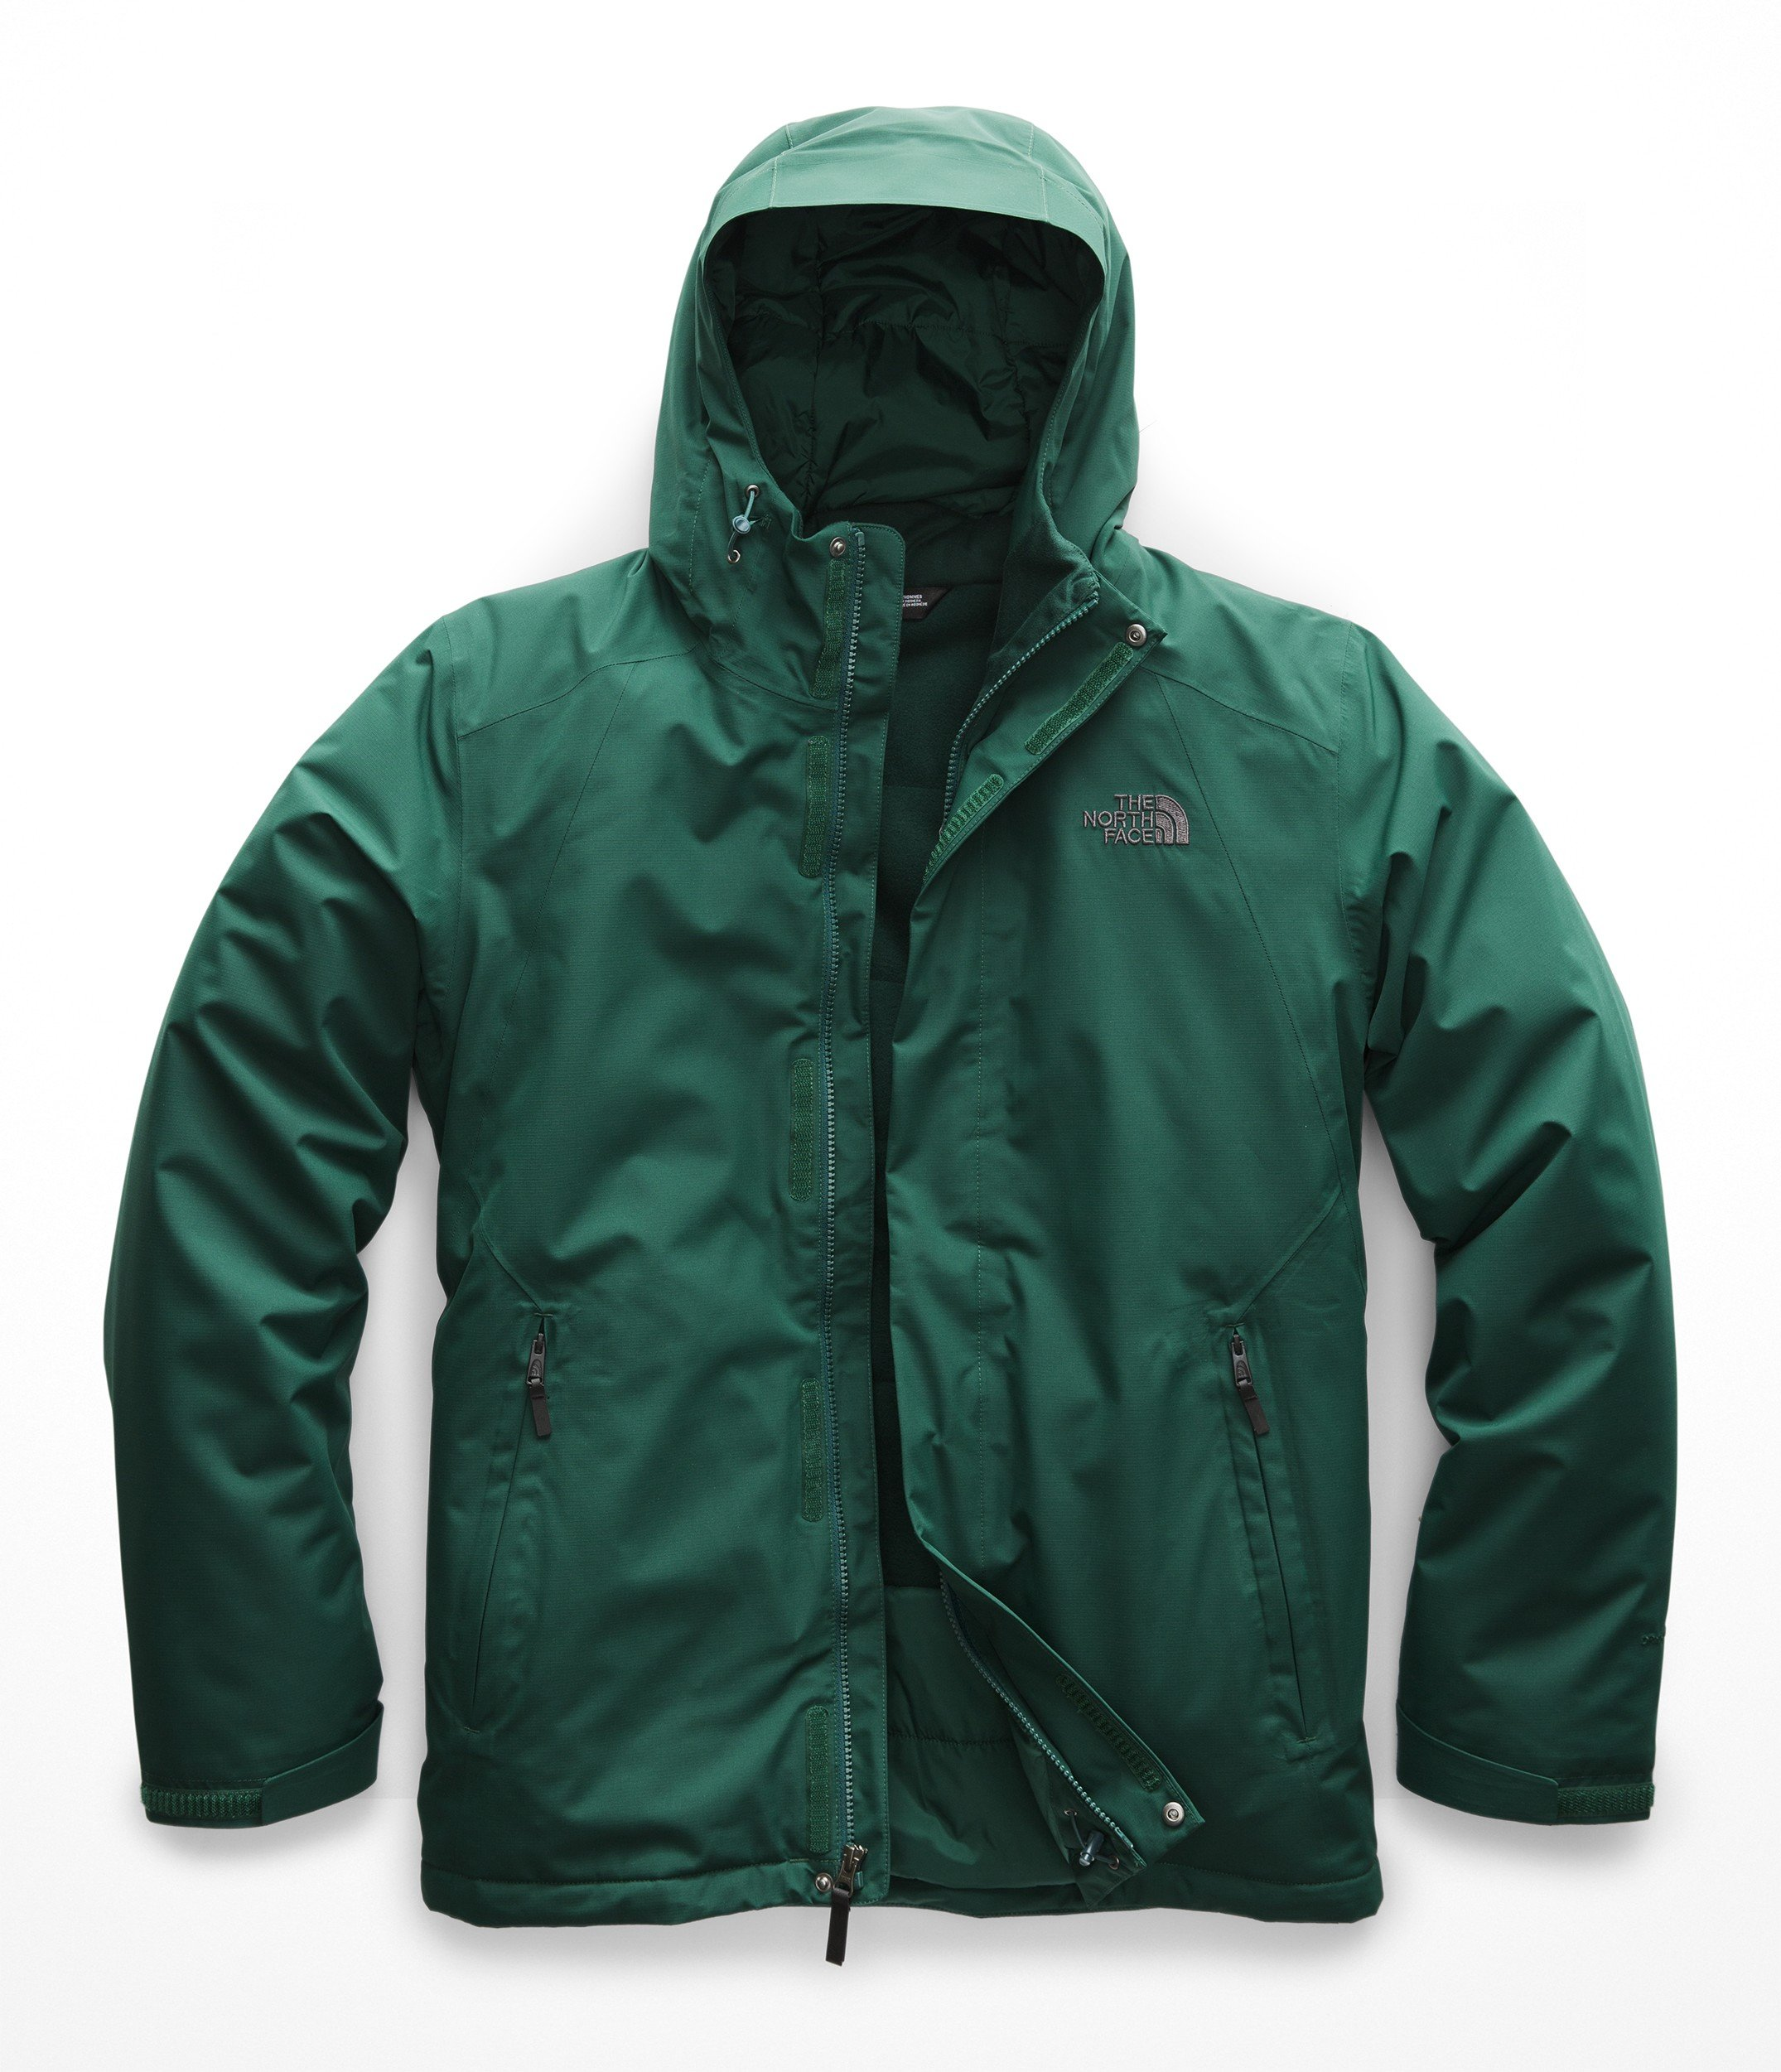 The North Face Men's Inlux Insulated Jacket - Botanical Garden Green - L by The North Face